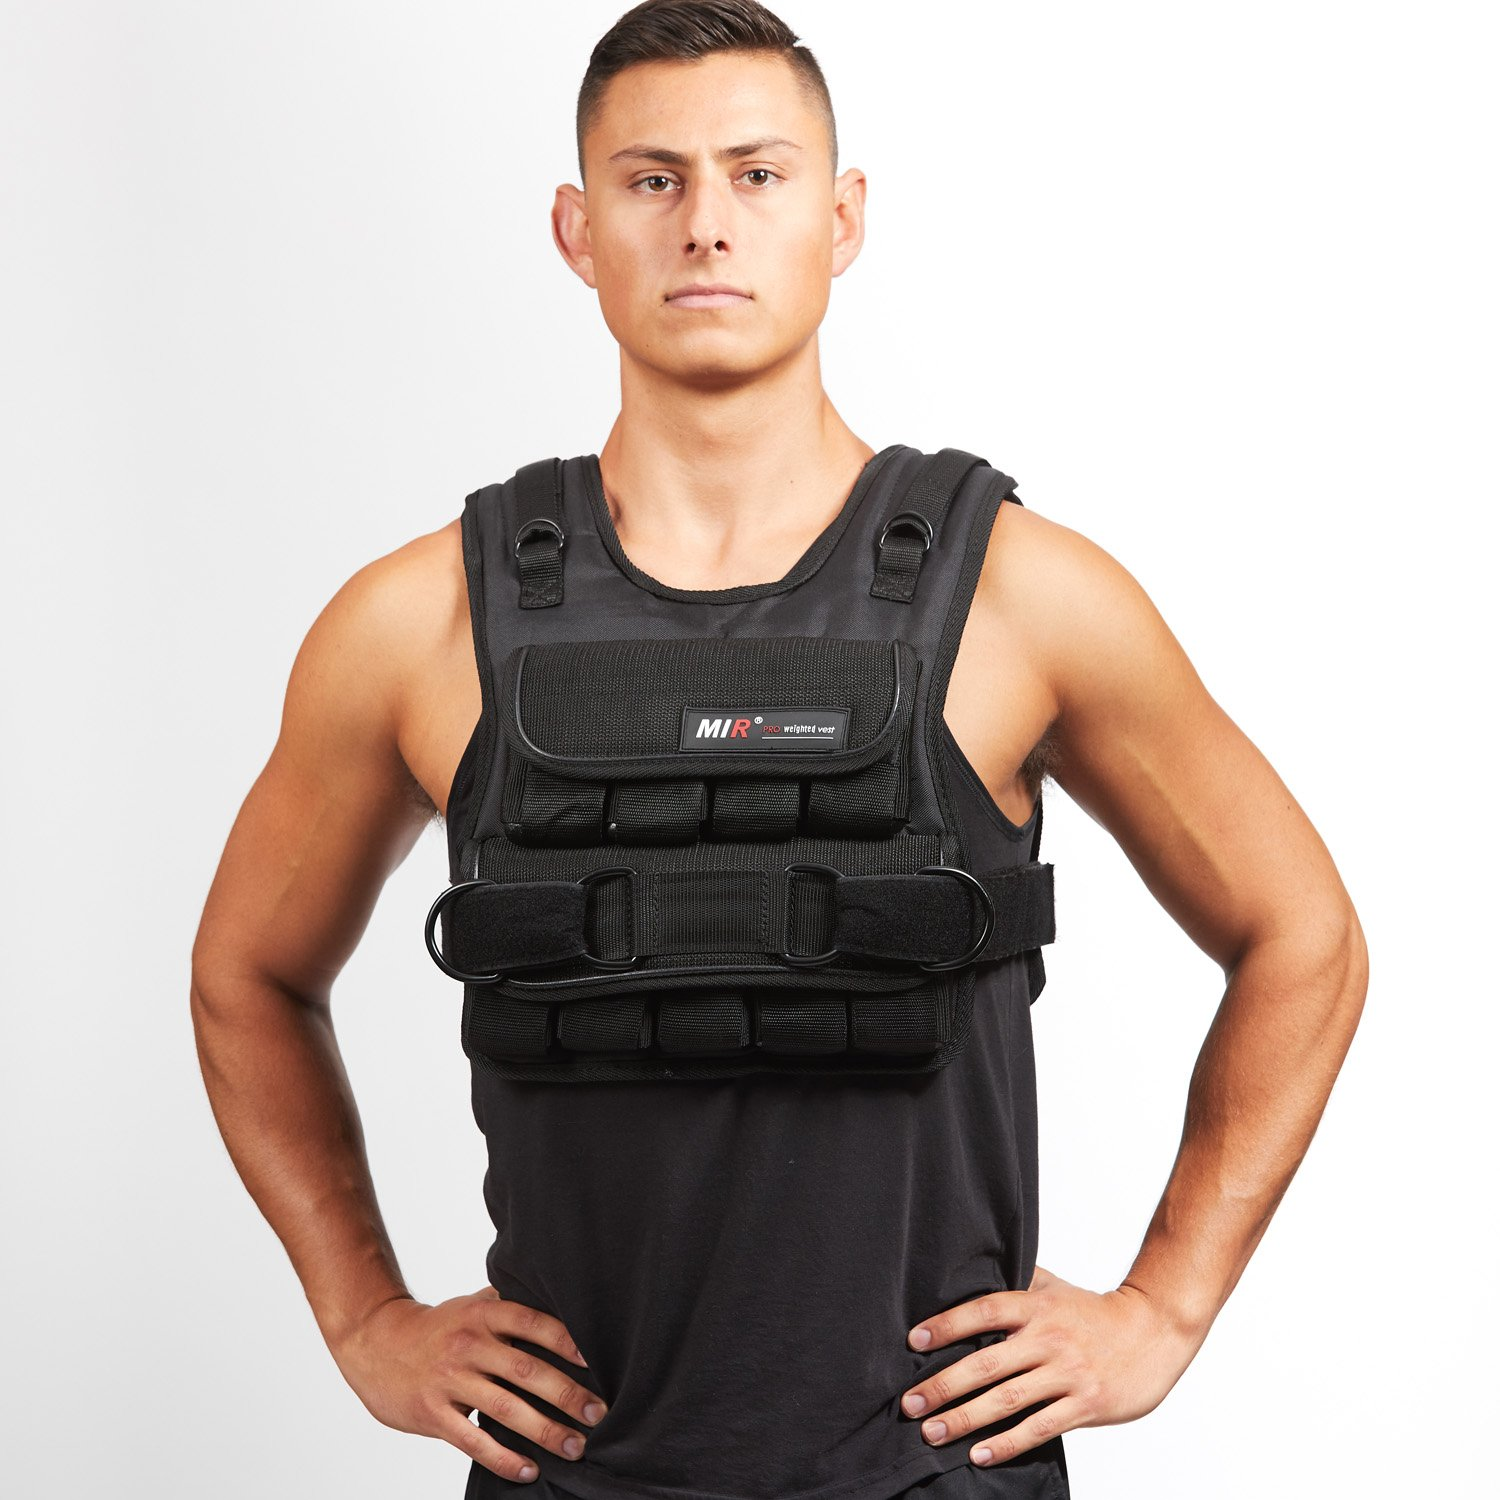 MIR - 60LBS (SHORT NARROW STYLE) ADJUSTABLE WEIGHTED VEST by miR